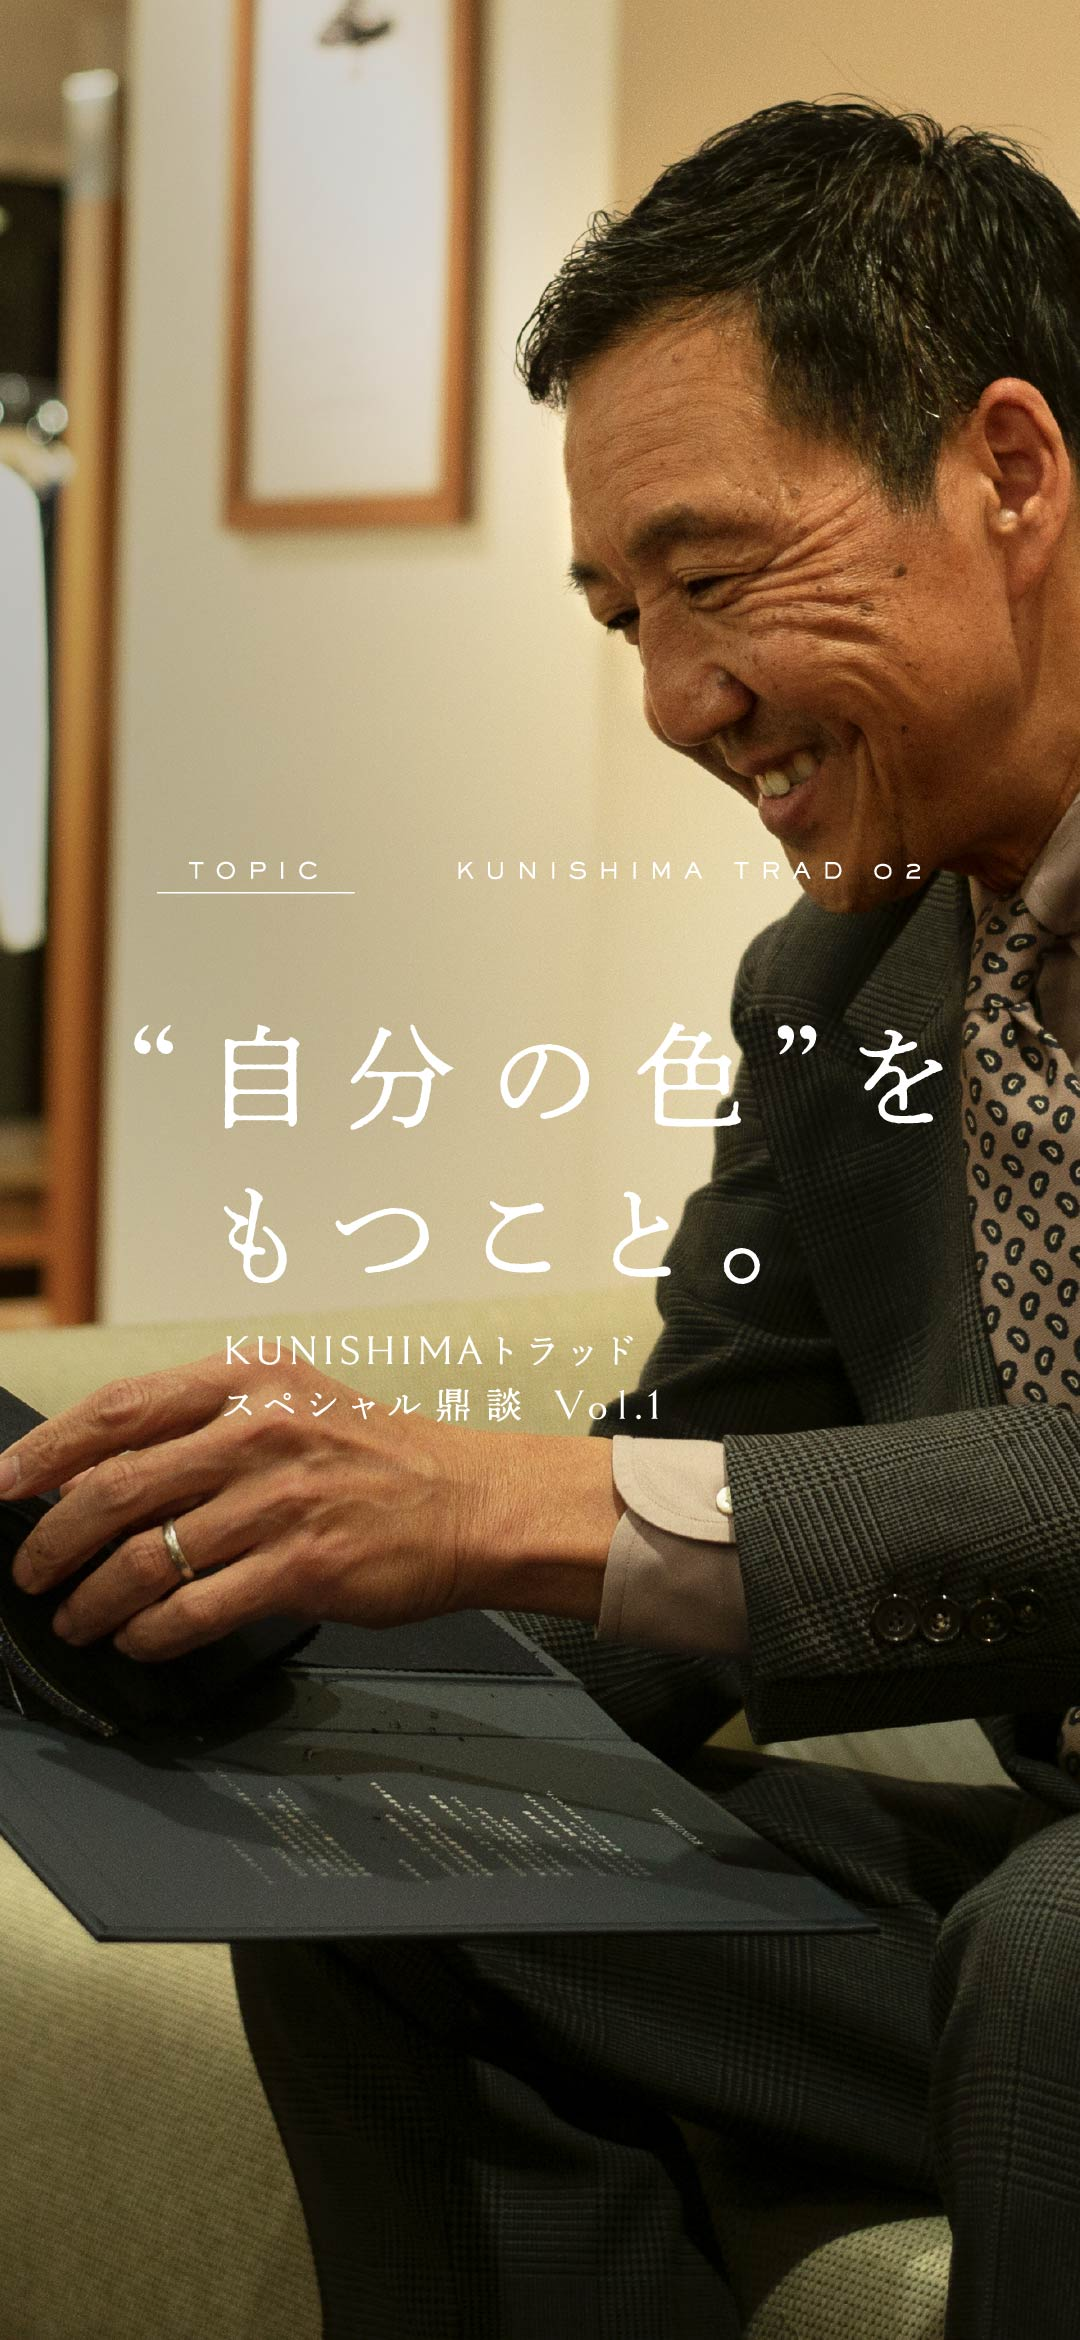 TOPIC KUNISHIMAトラッド 02